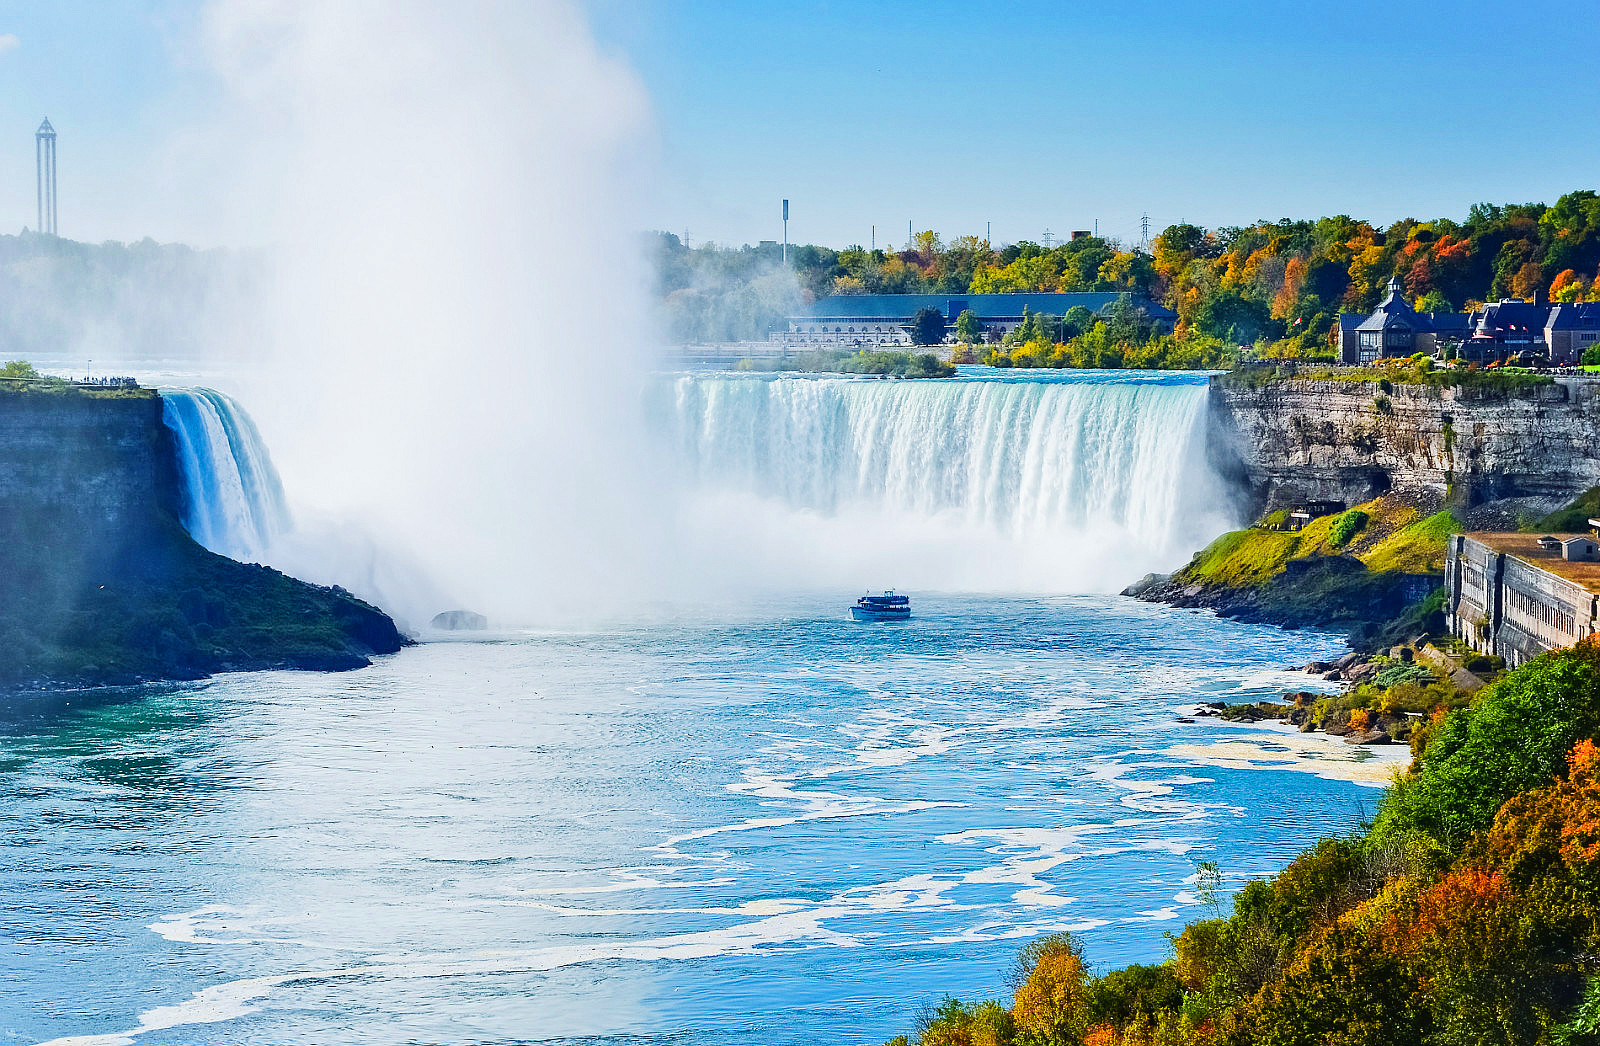 Bus Tour To Niagara Falls